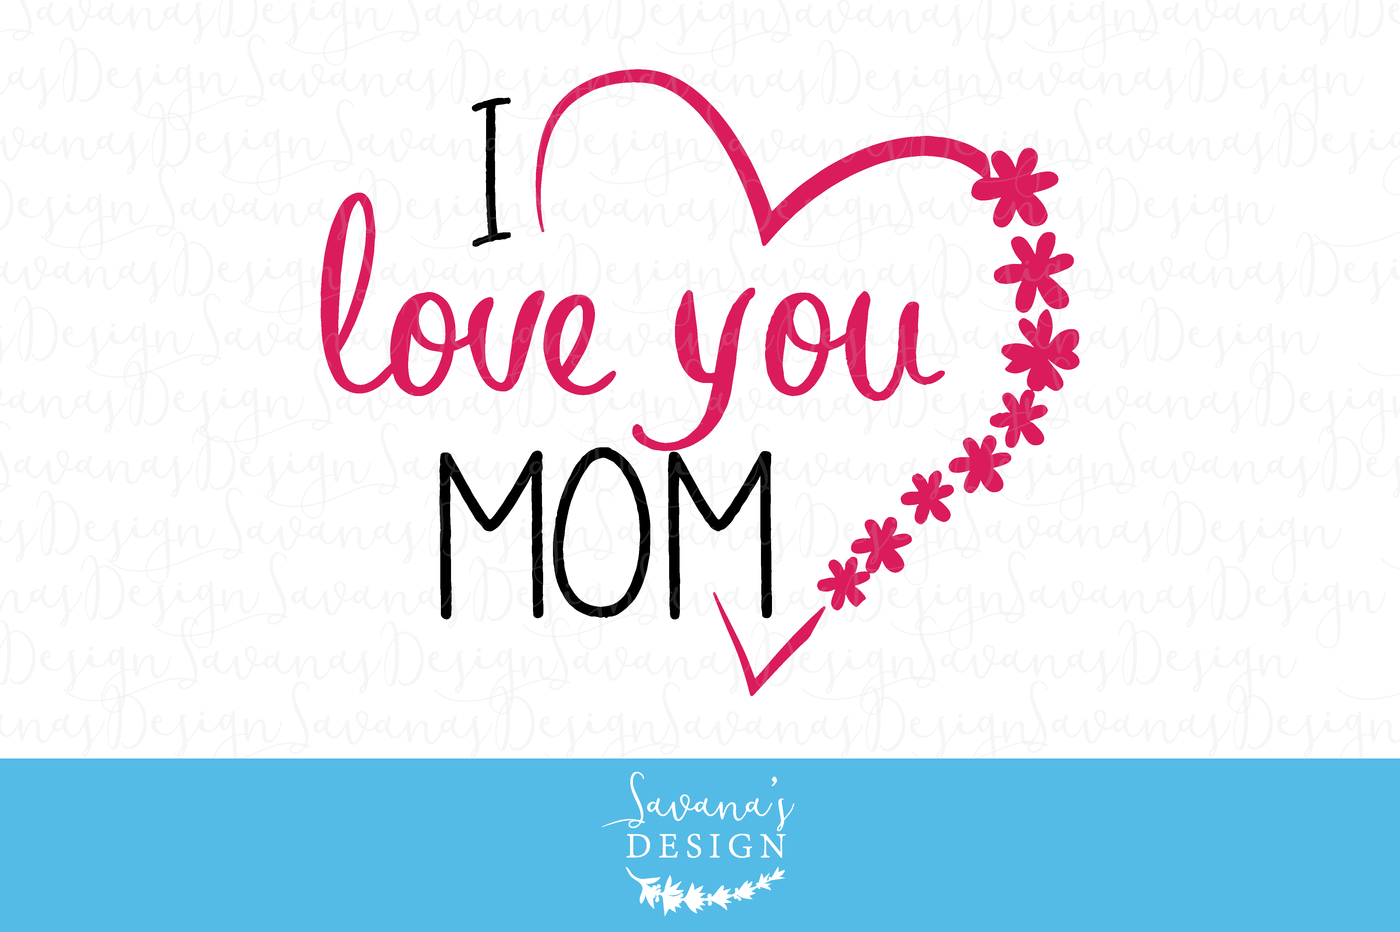 Love Mom Png 6 Png Image